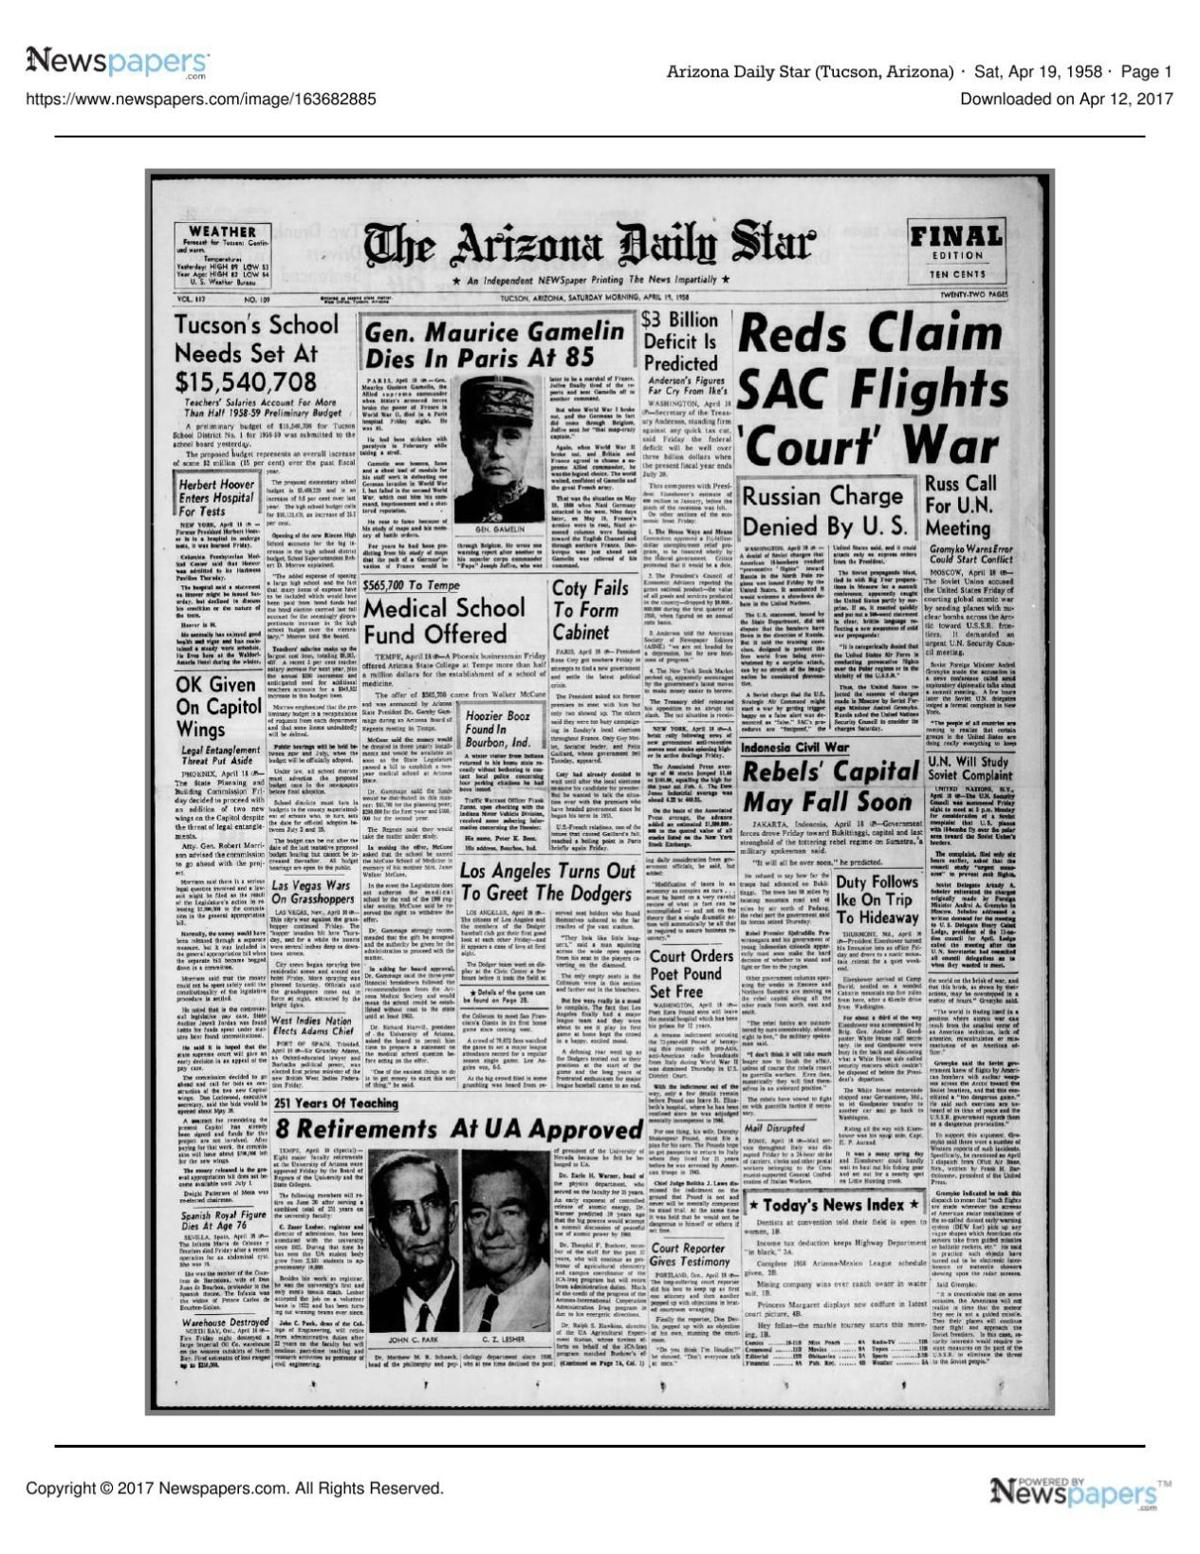 Arizona Daily Star front page April 19, 1958 pdf | | tucson com